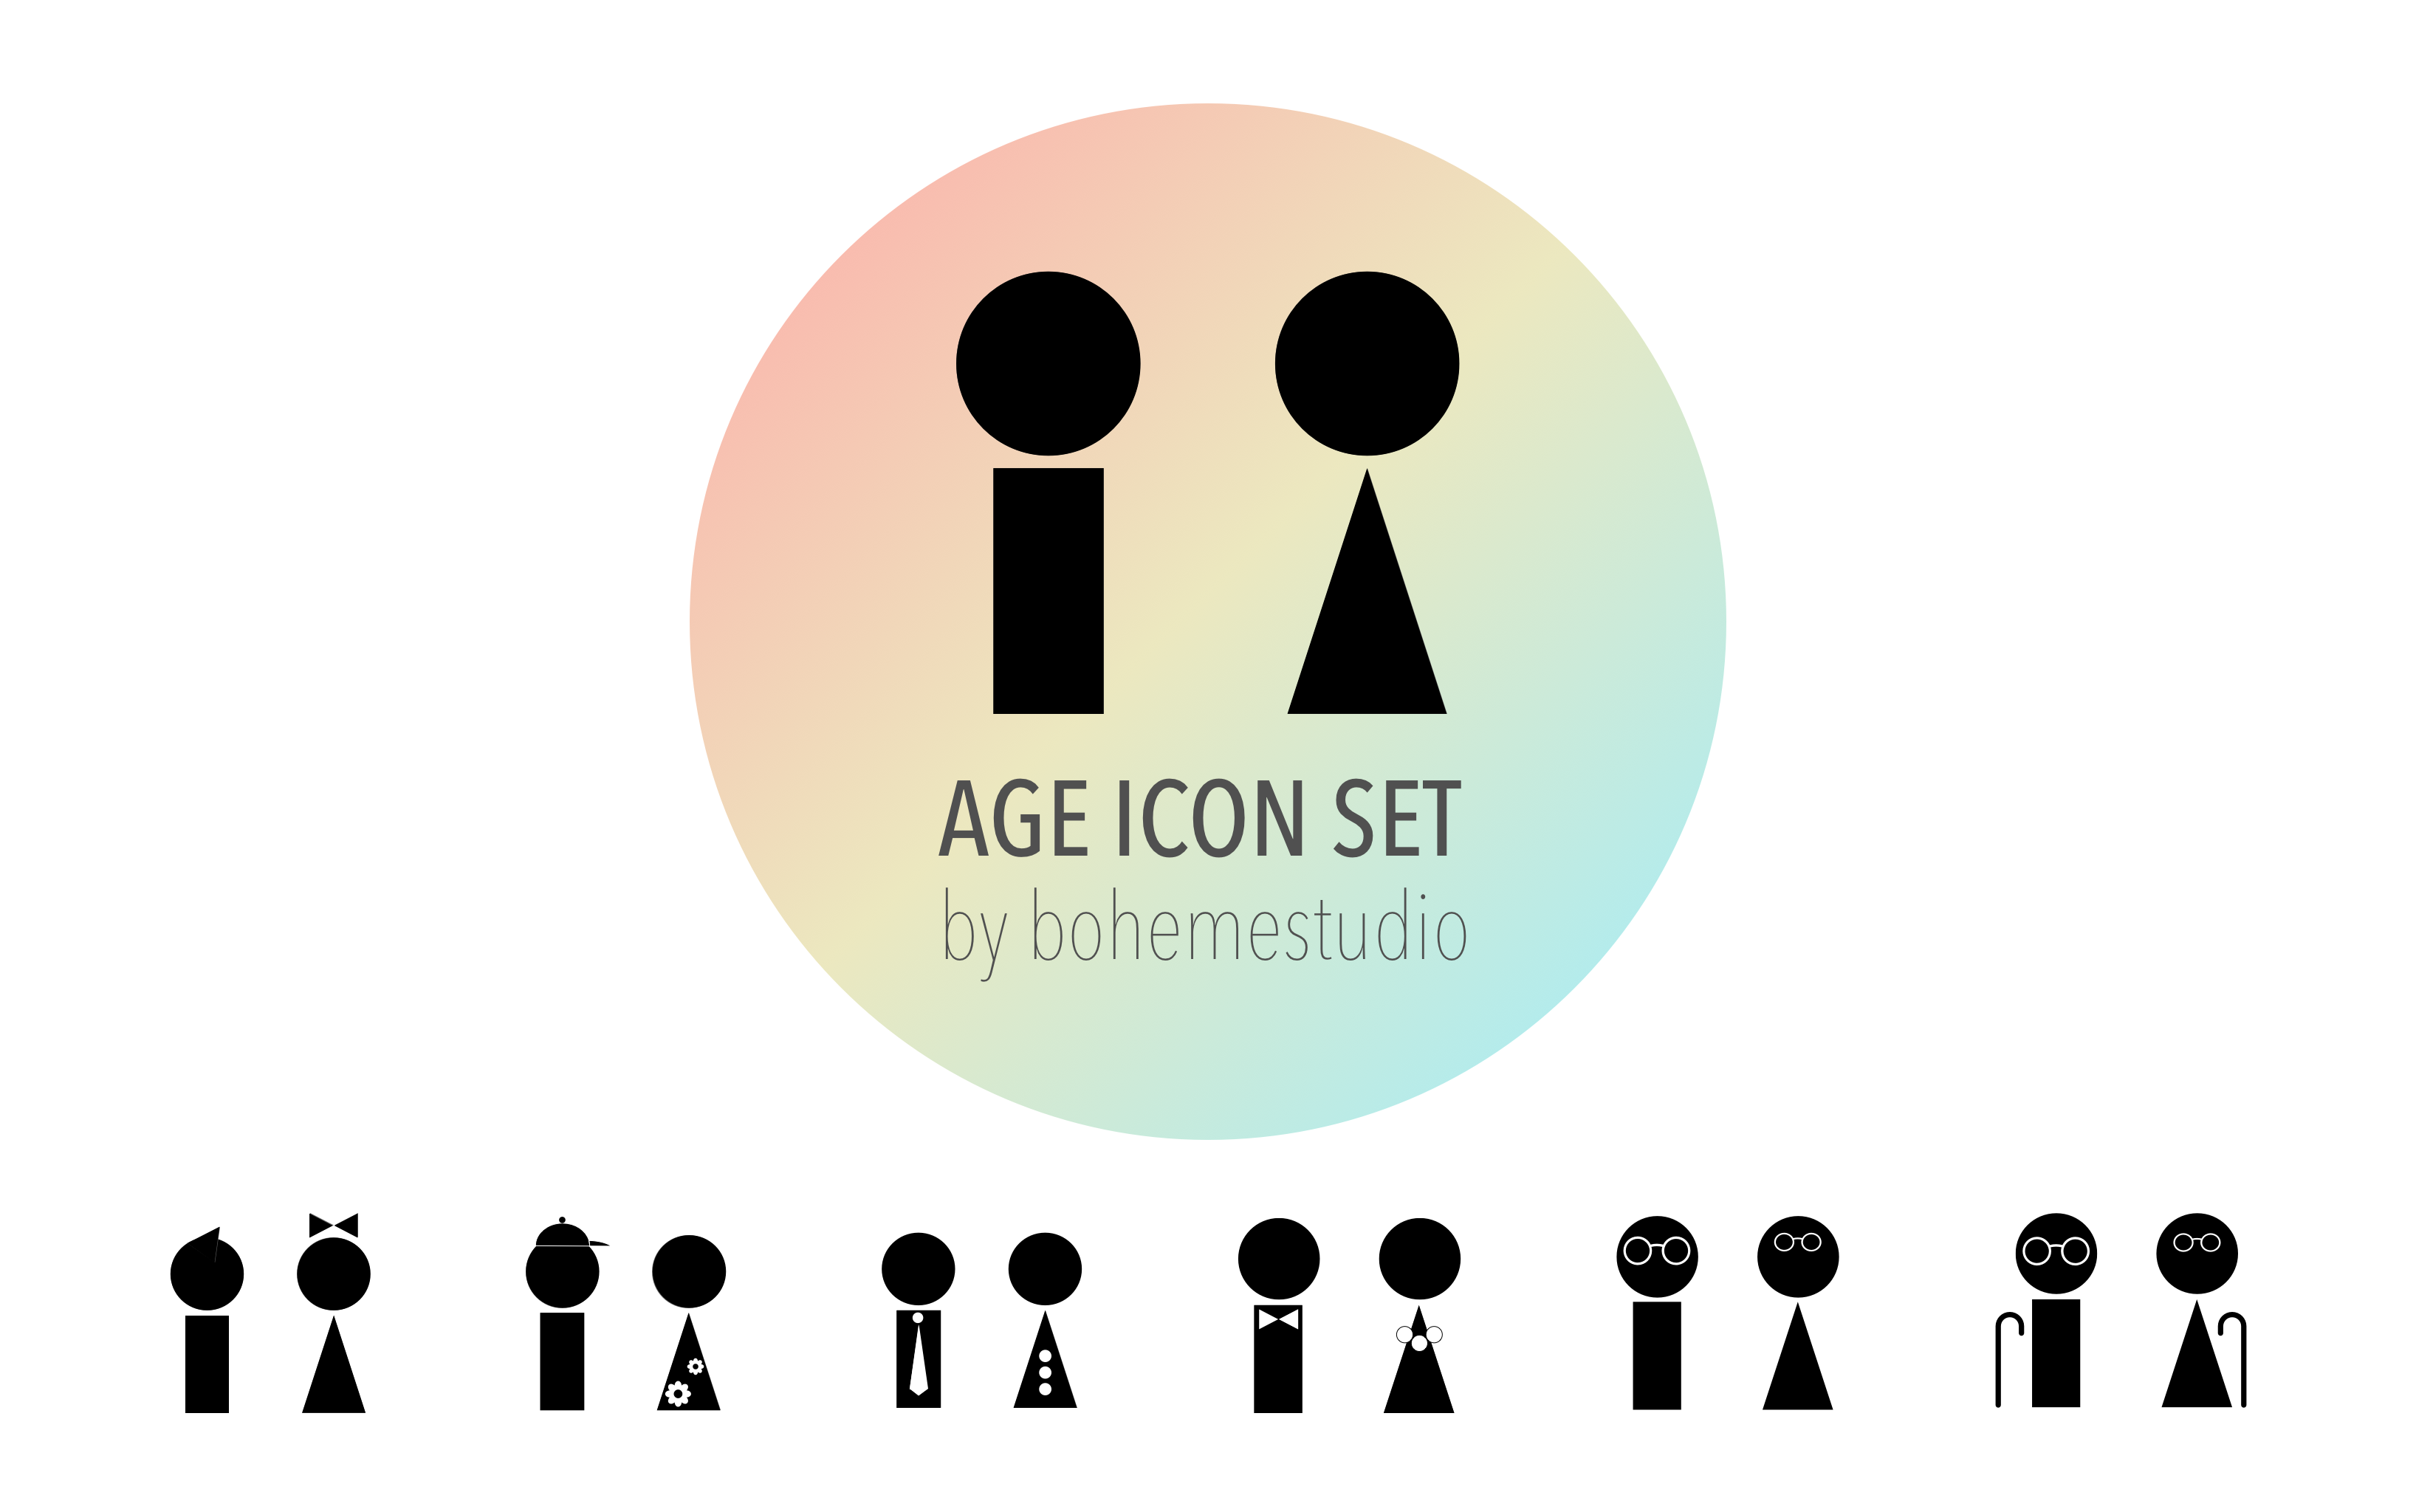 age-icon-set-by-bohemestudio